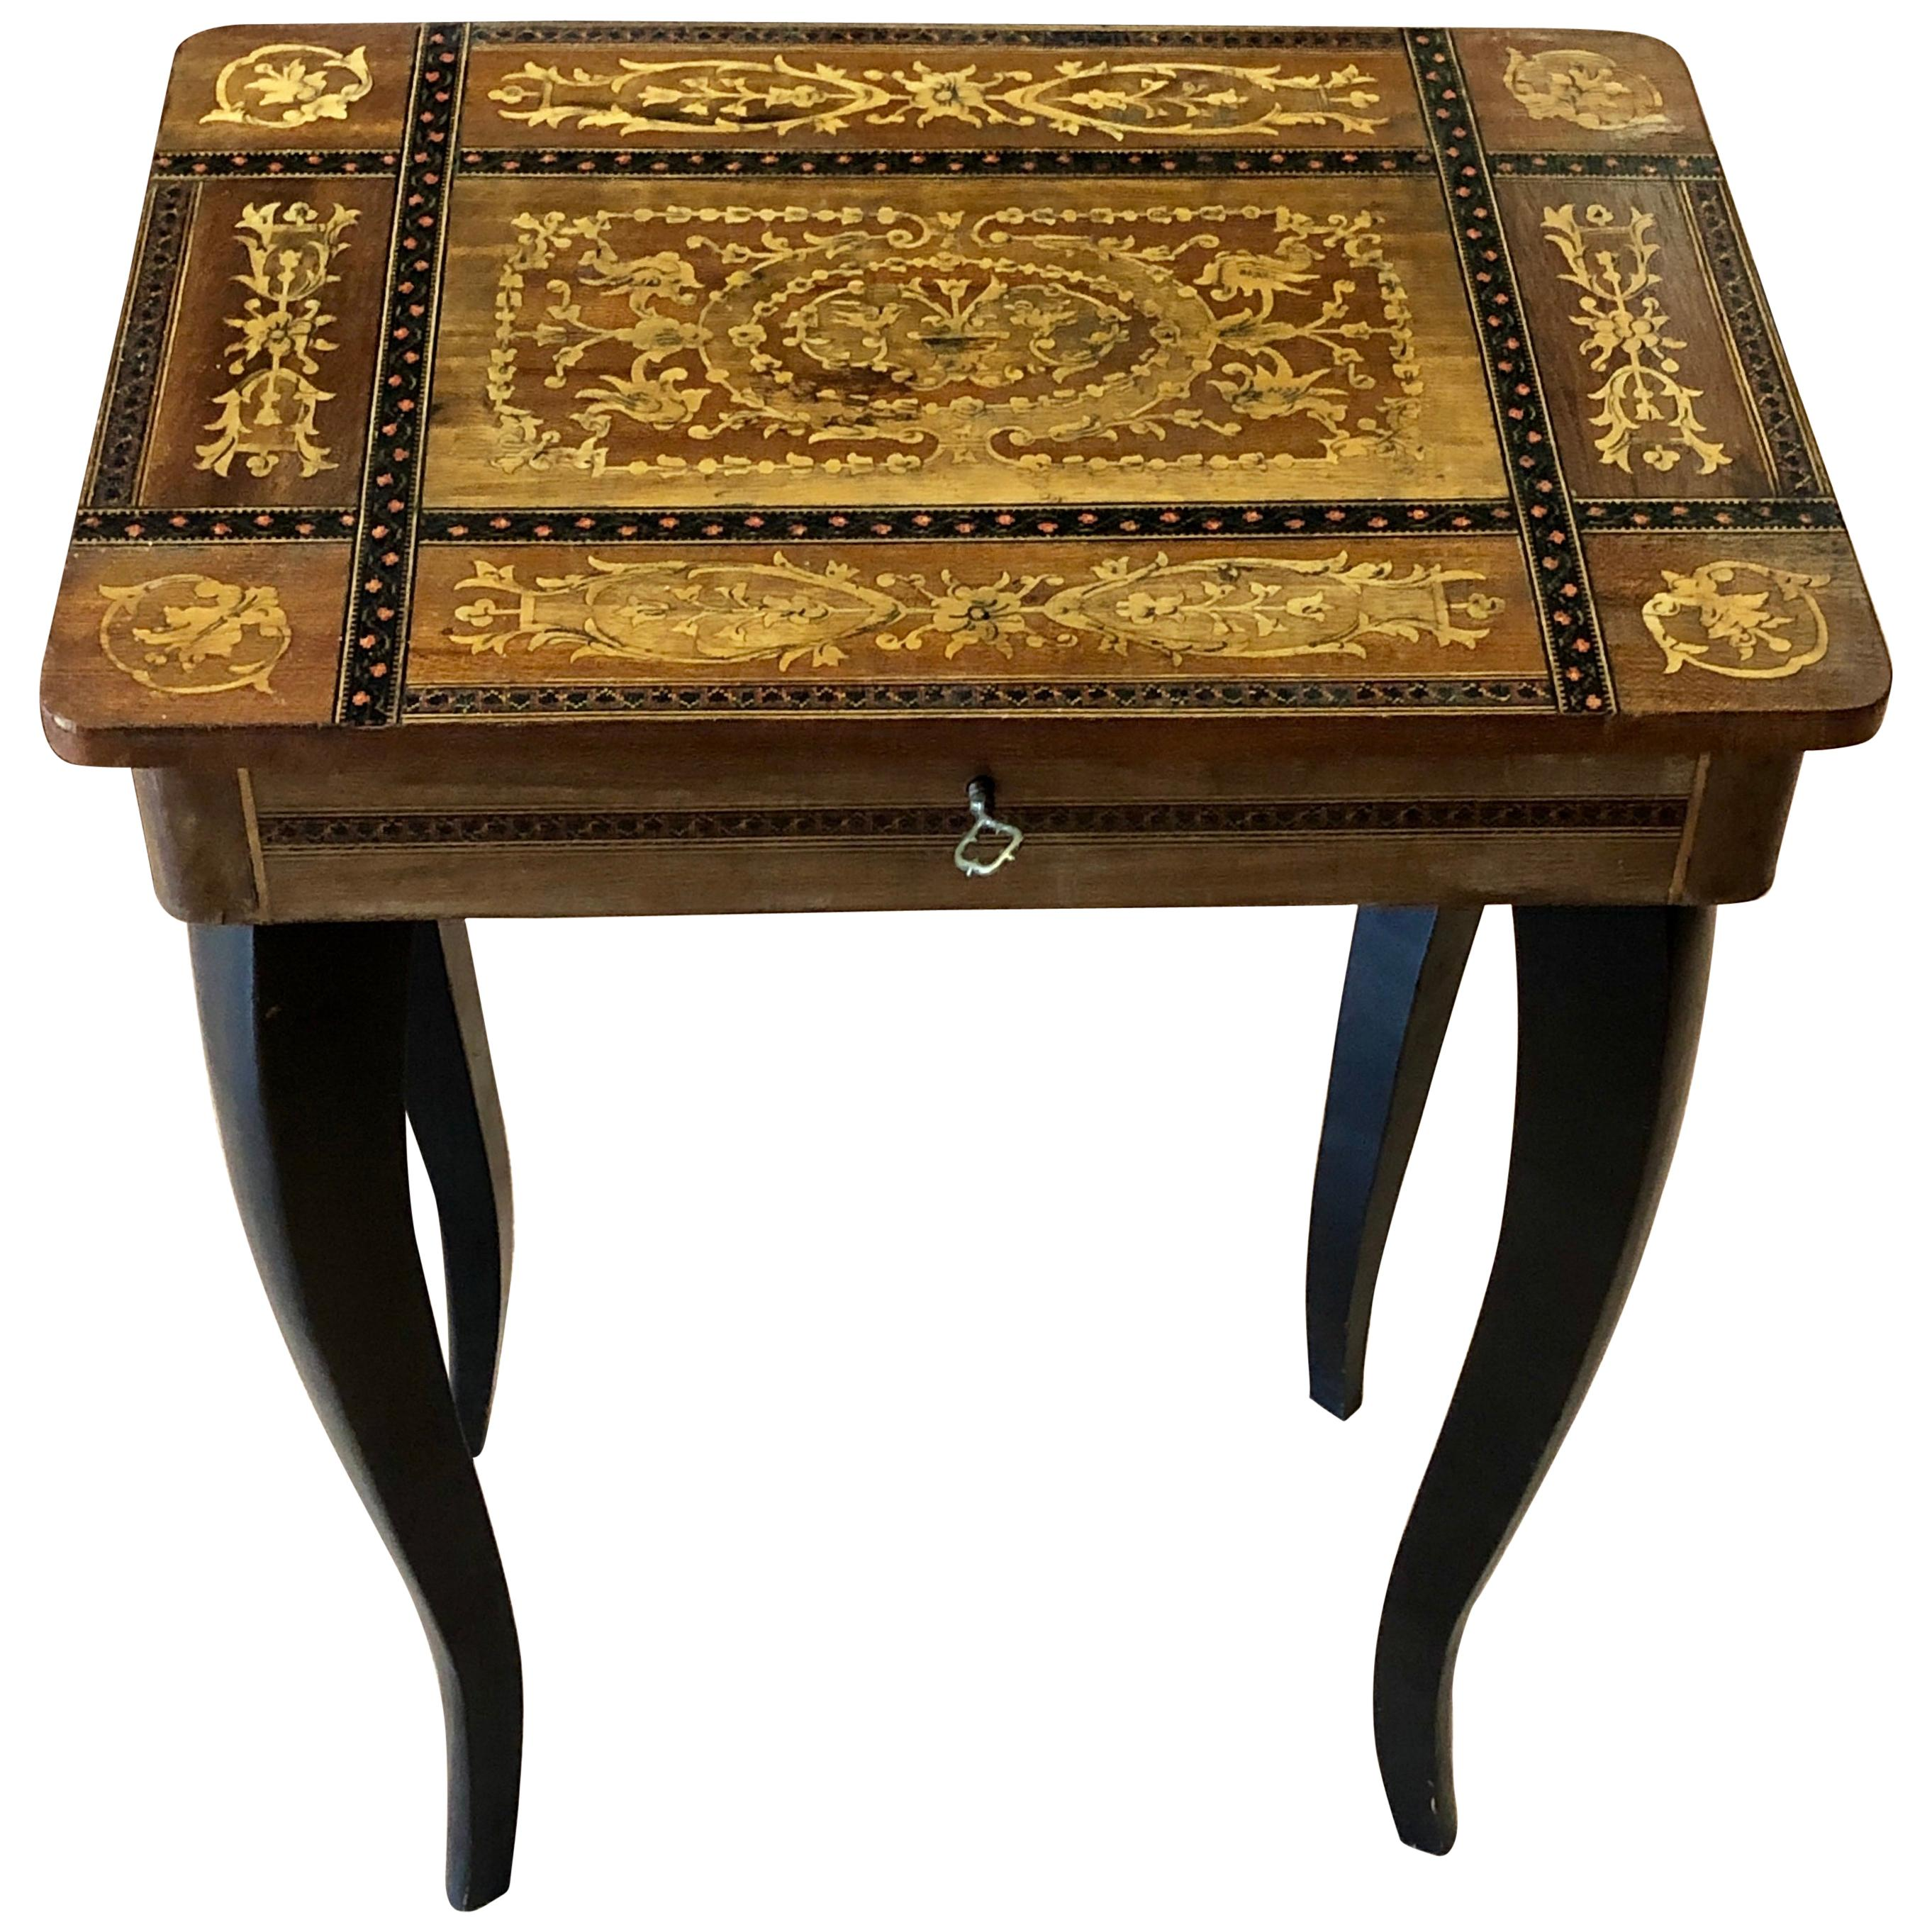 2cc02ae58 20th Century Small Inlaid Side Table with Jewelry Compartment and Music Box  For Sale at 1stdibs